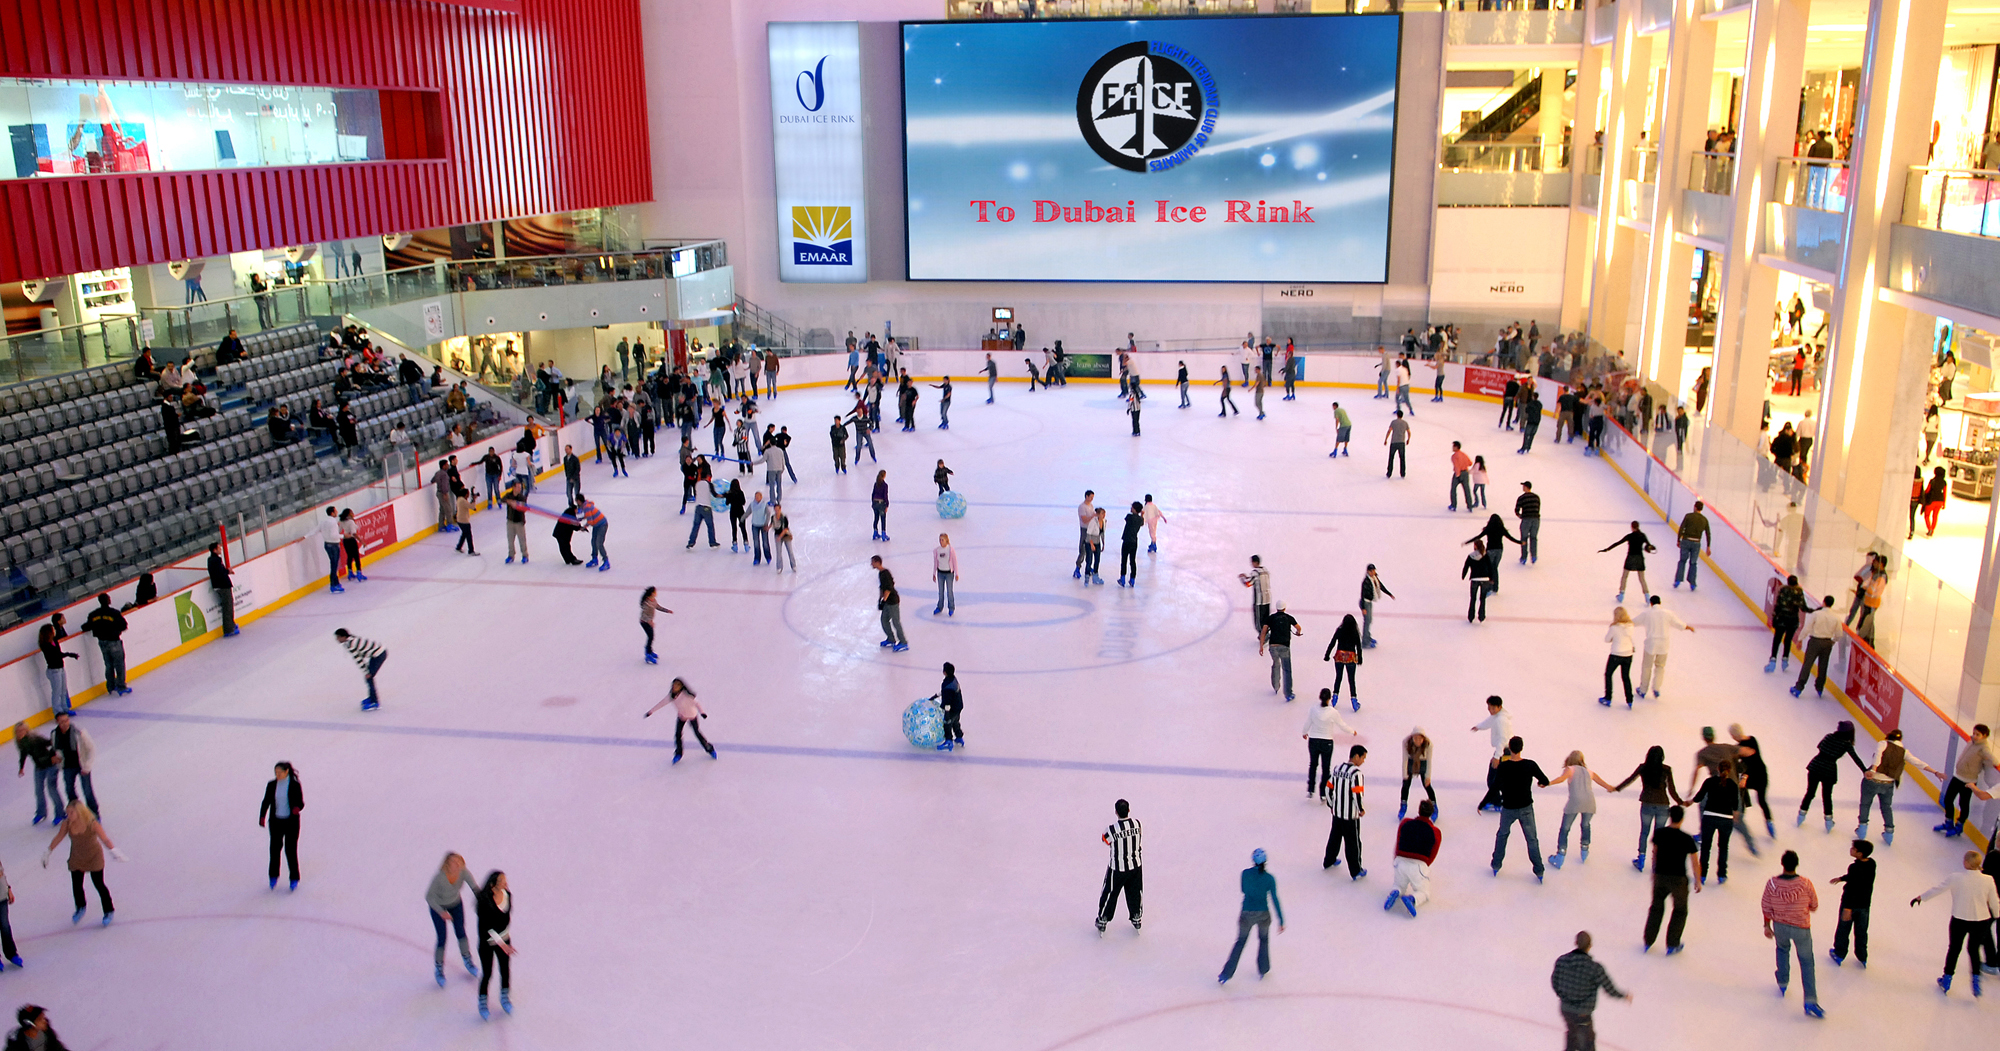 students all over the ice rink